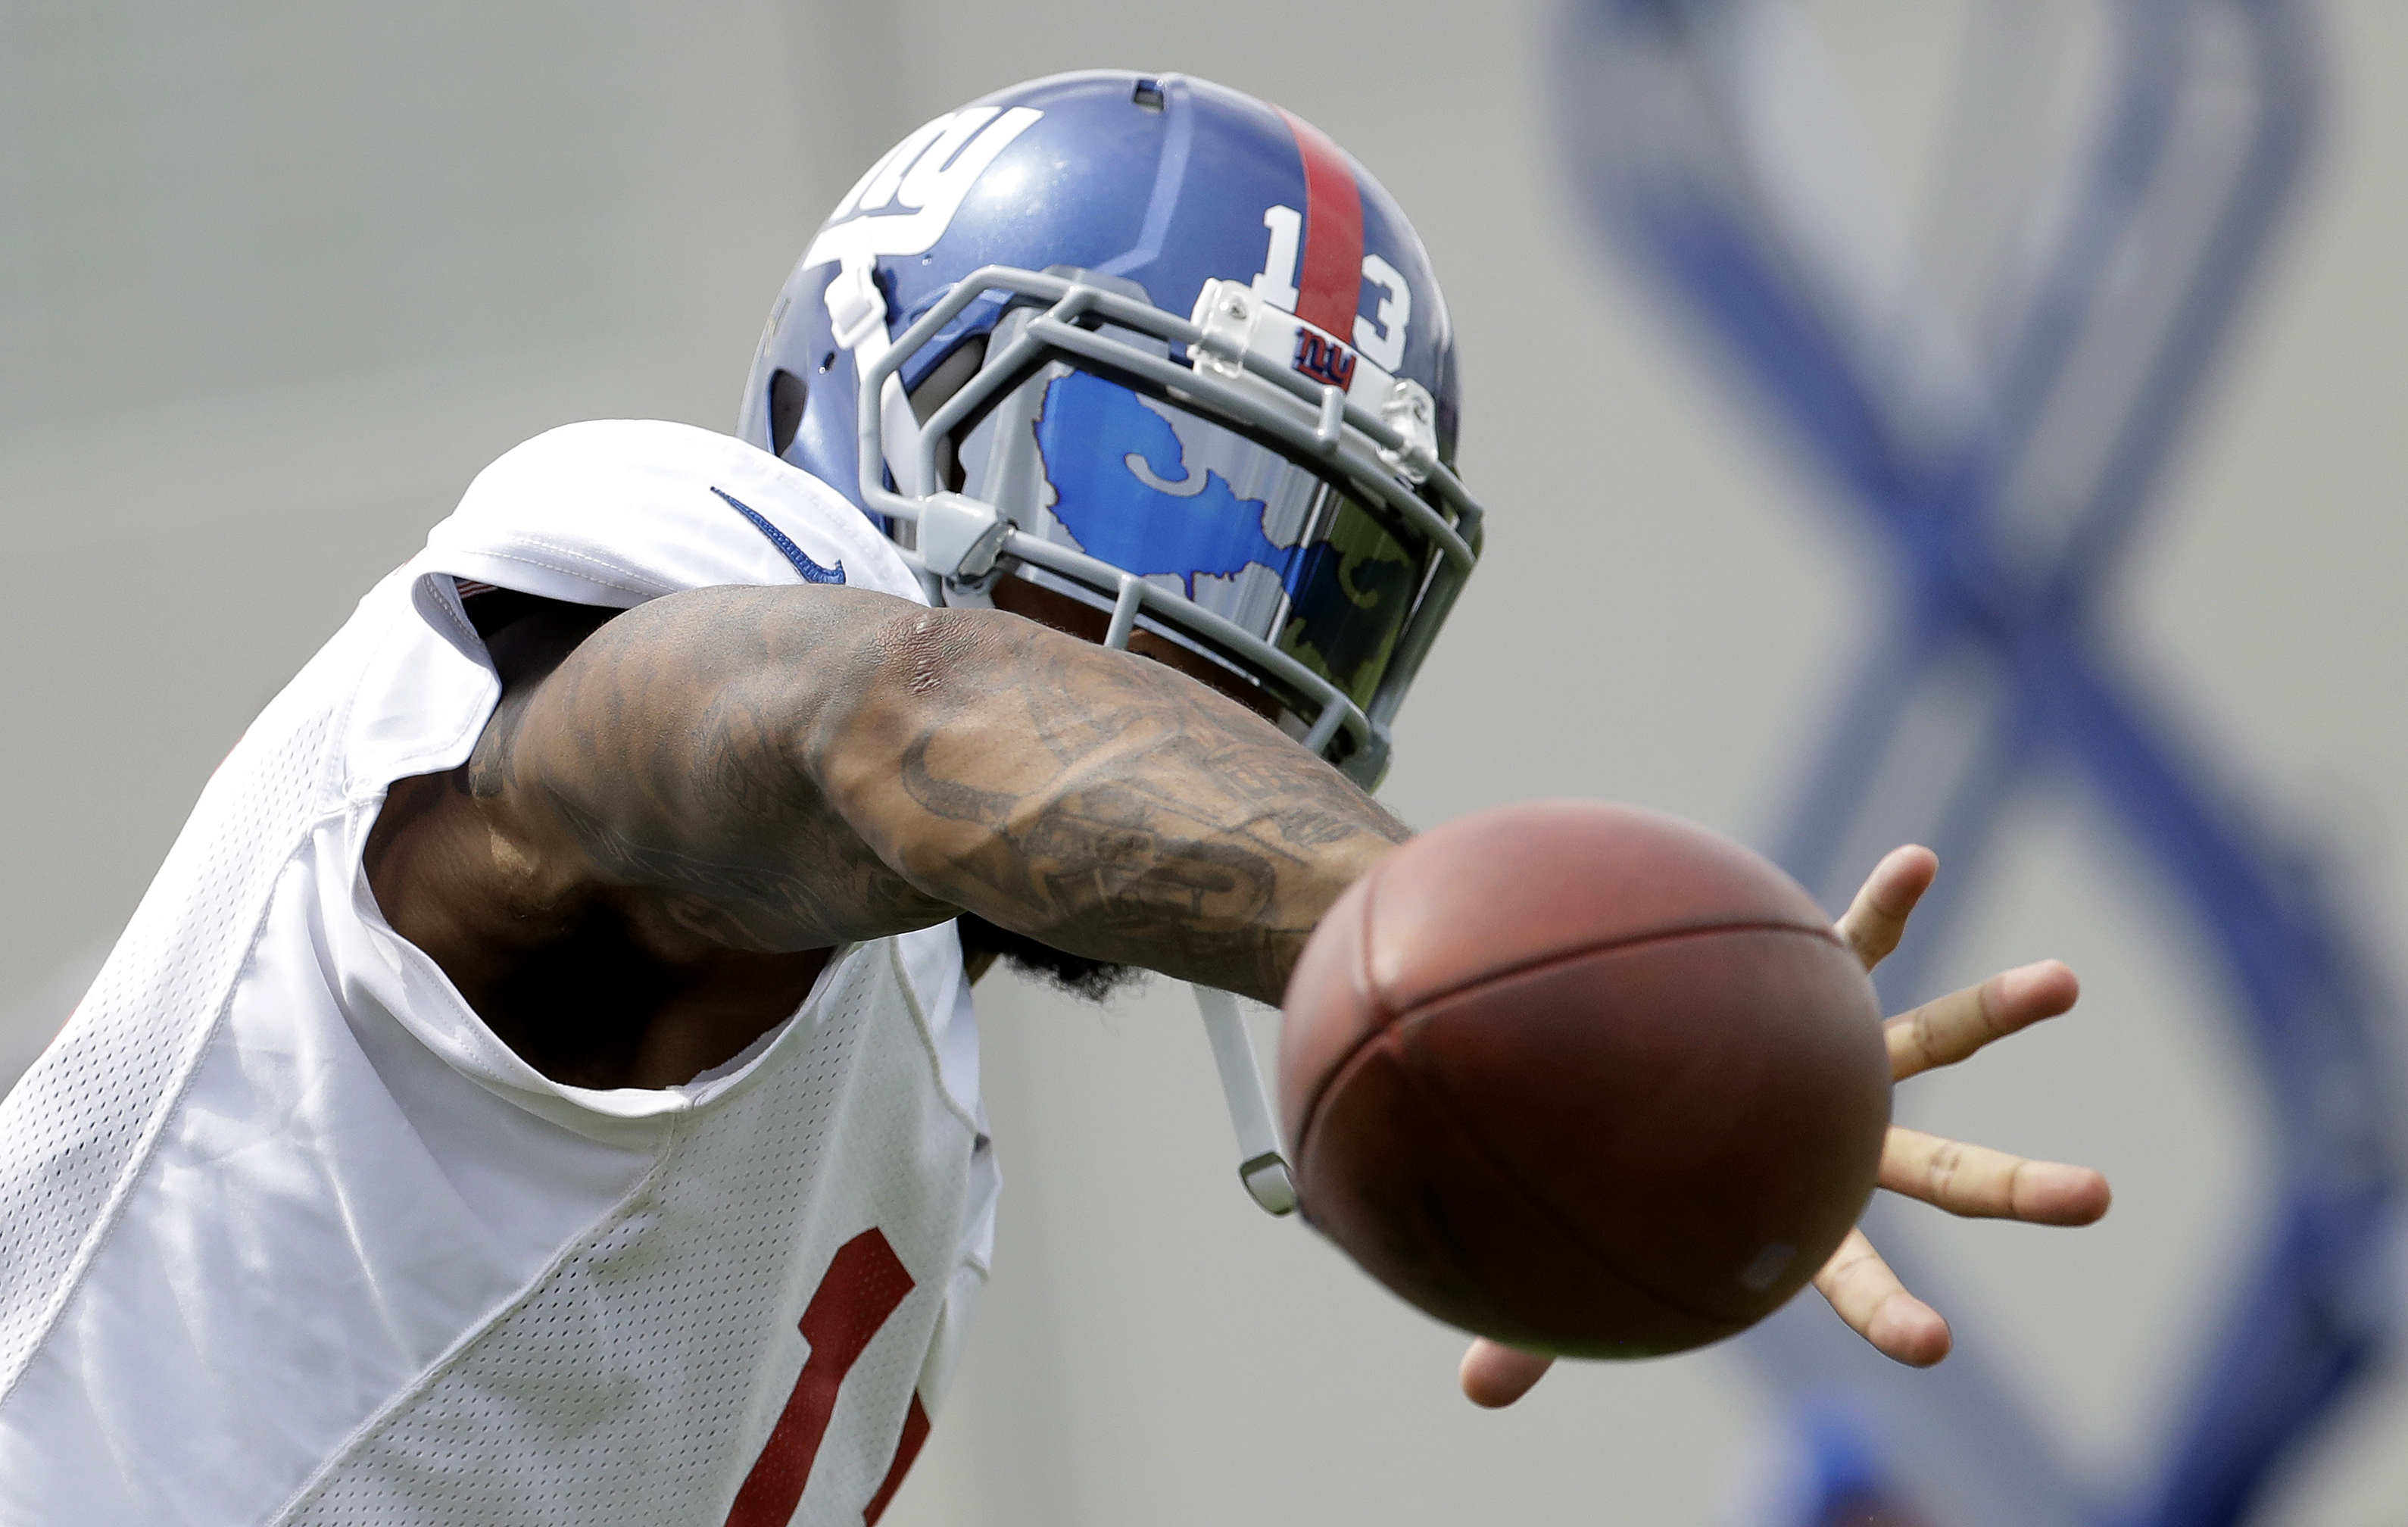 New York Giants wide receiver Odell Beckham makes a one-handed catch during NFL football training camp, Tuesday, Aug. 8, 2017, in East Rutherford, N.J. (AP Photo/Julio Cortez)